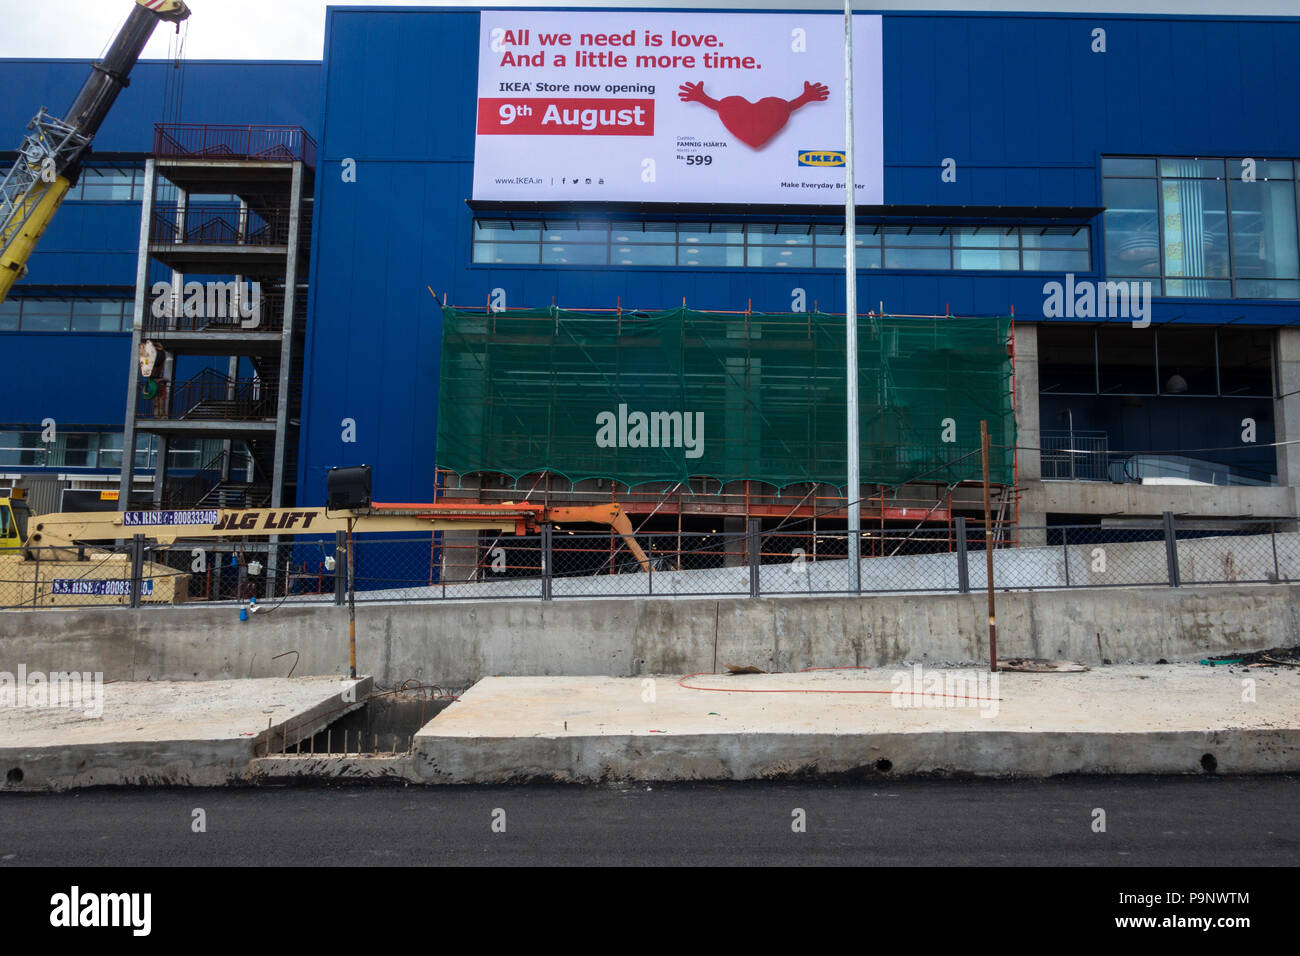 Swedish Furniture Giant Ikea Will Open It S First Store In India On